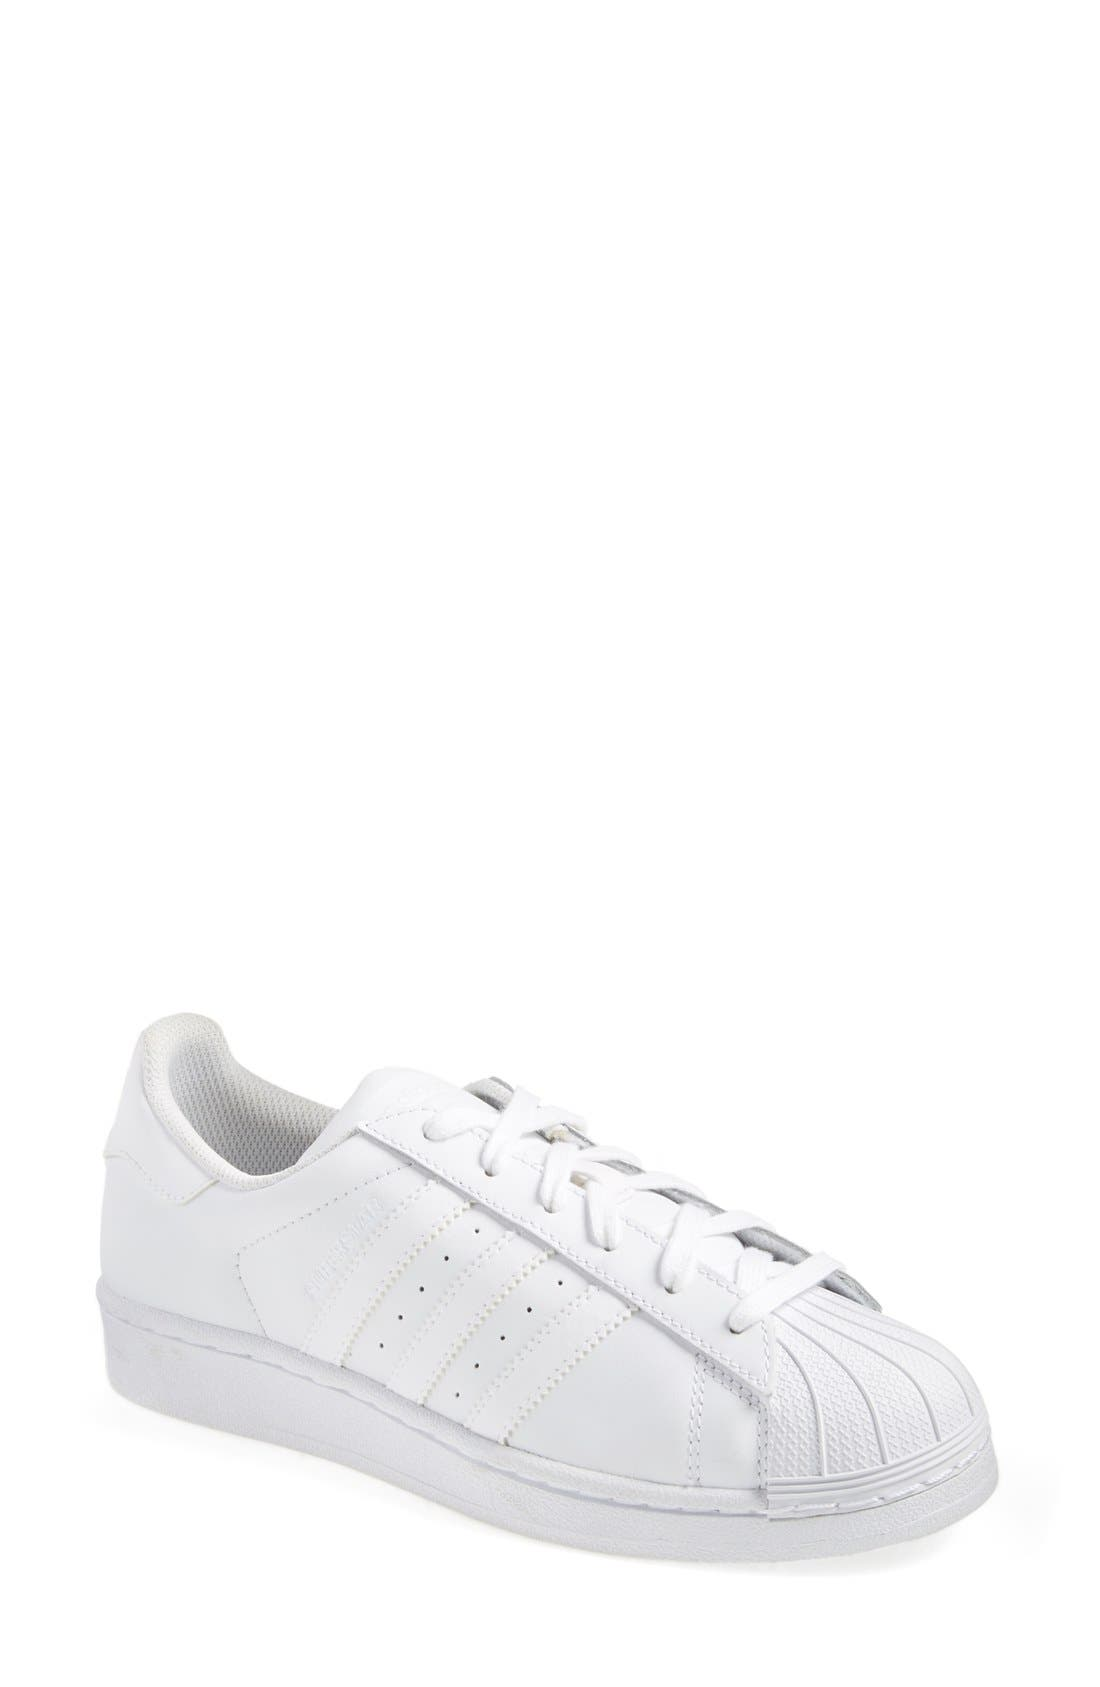 Superstar Sneaker,                             Main thumbnail 1, color,                             White